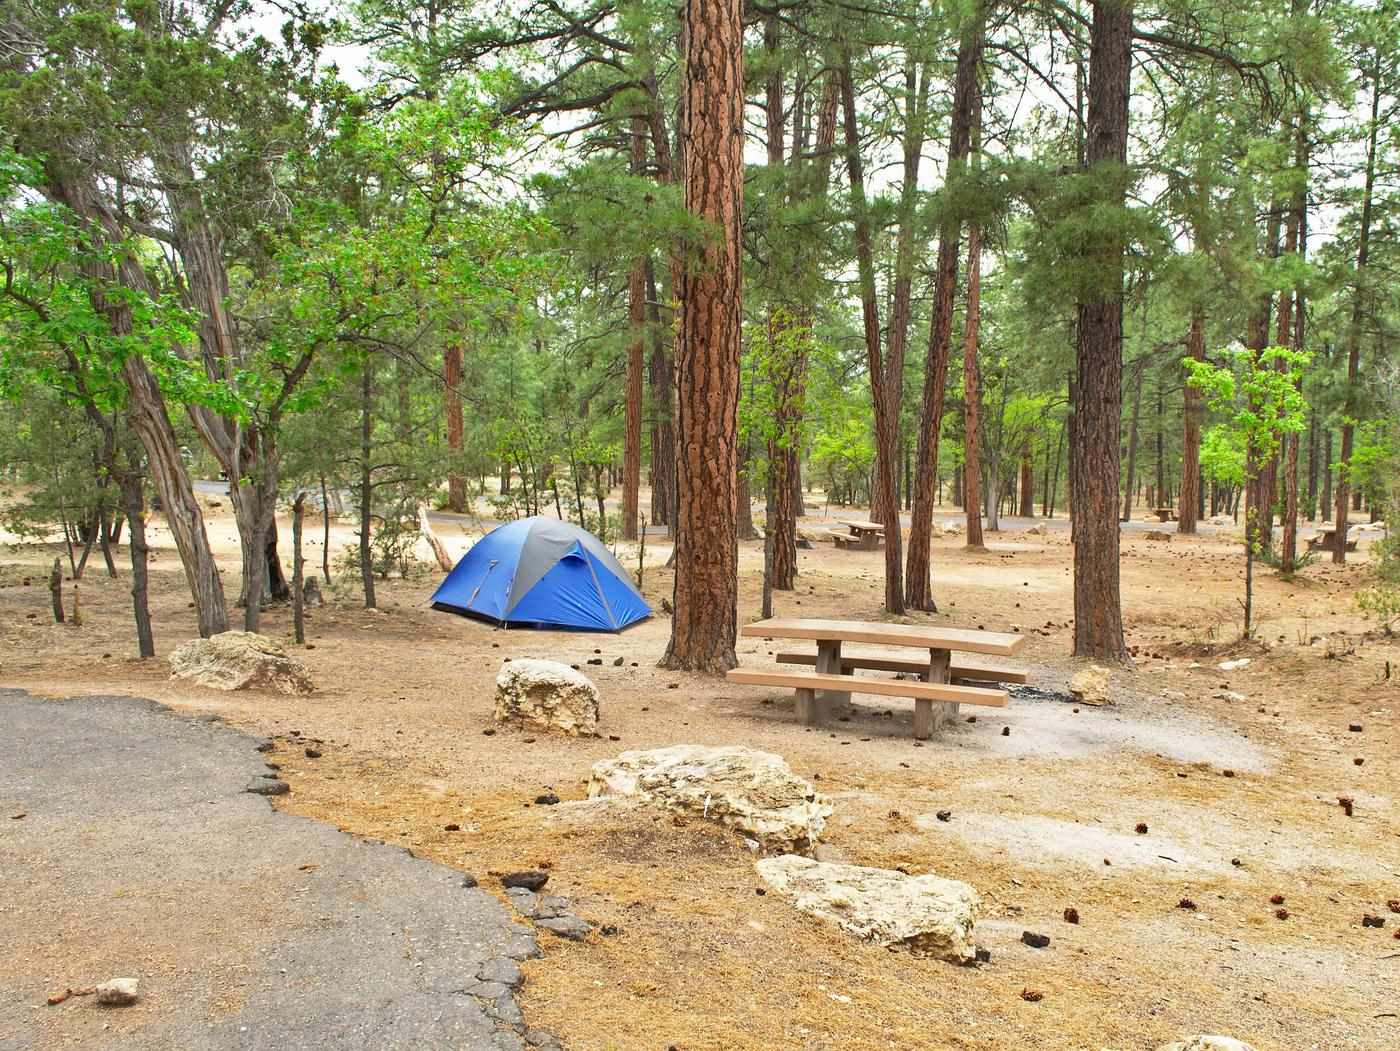 Picnic table, fire pit, and parking spot, Mather CampgroundThe picnic table, fire pit, and parking spot for Aspen Loop 57, Mather Campground